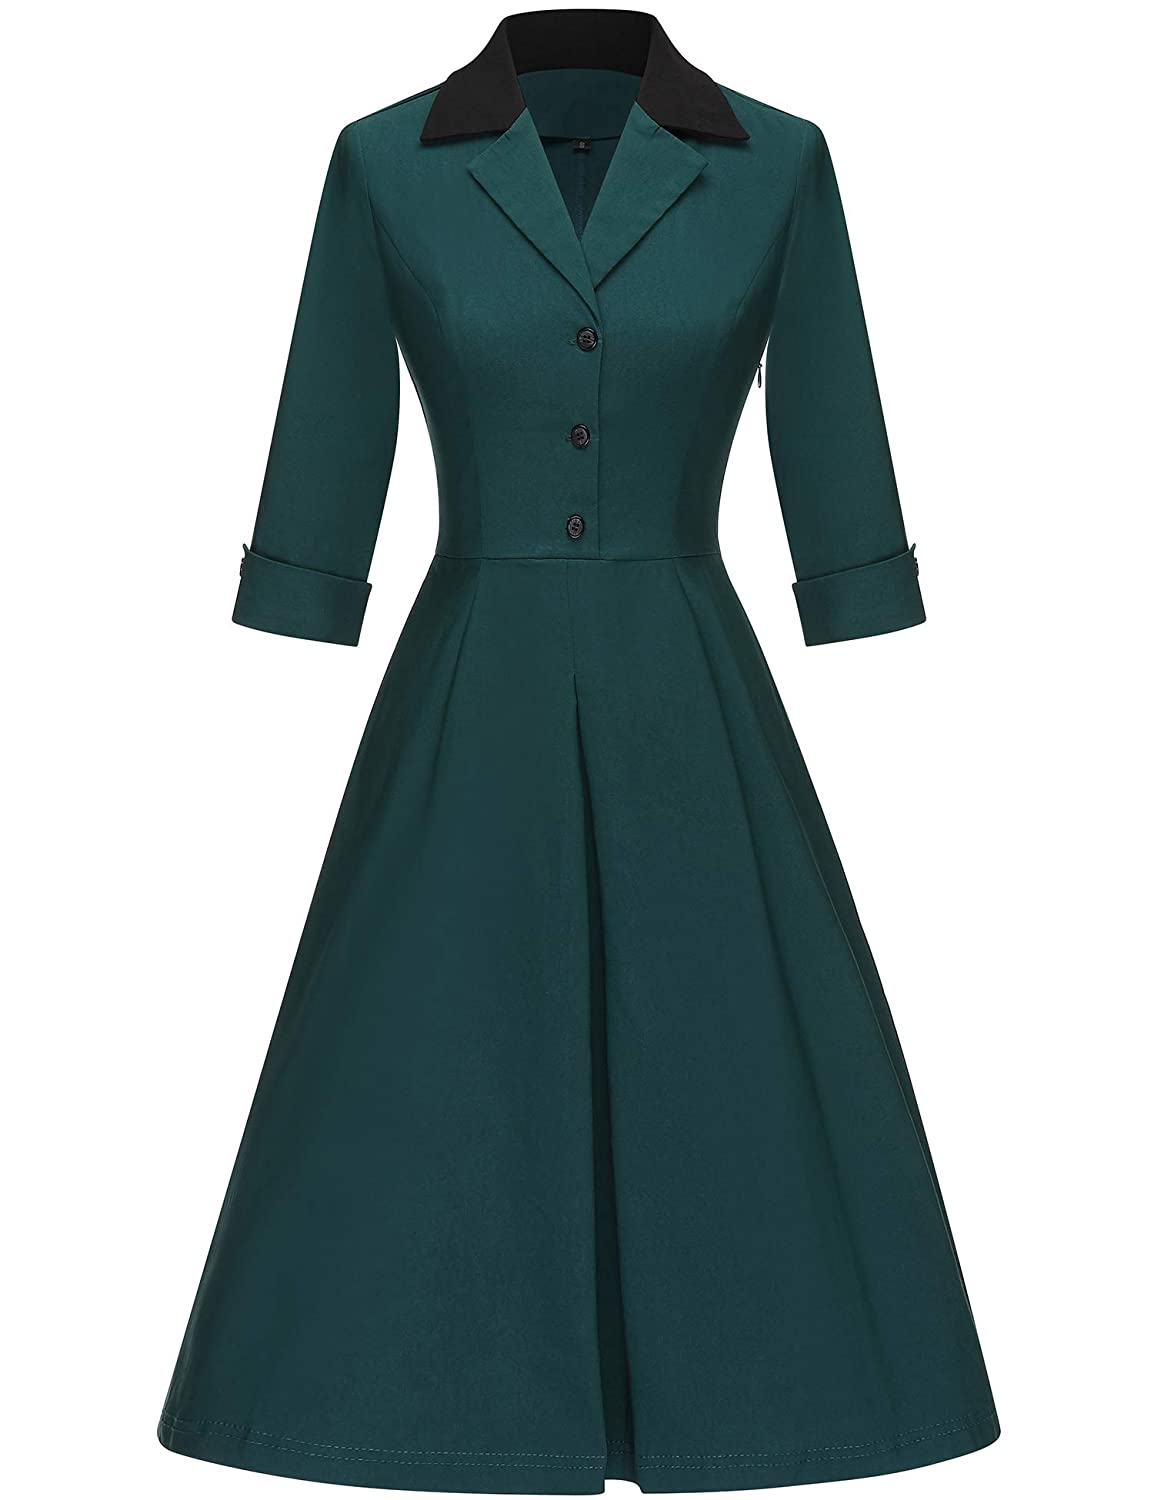 1940s Fashion Advice for Tall Women GownTown Womens 1950s Vintage 3/4 Sleeves A-Line Dress $36.98 AT vintagedancer.com